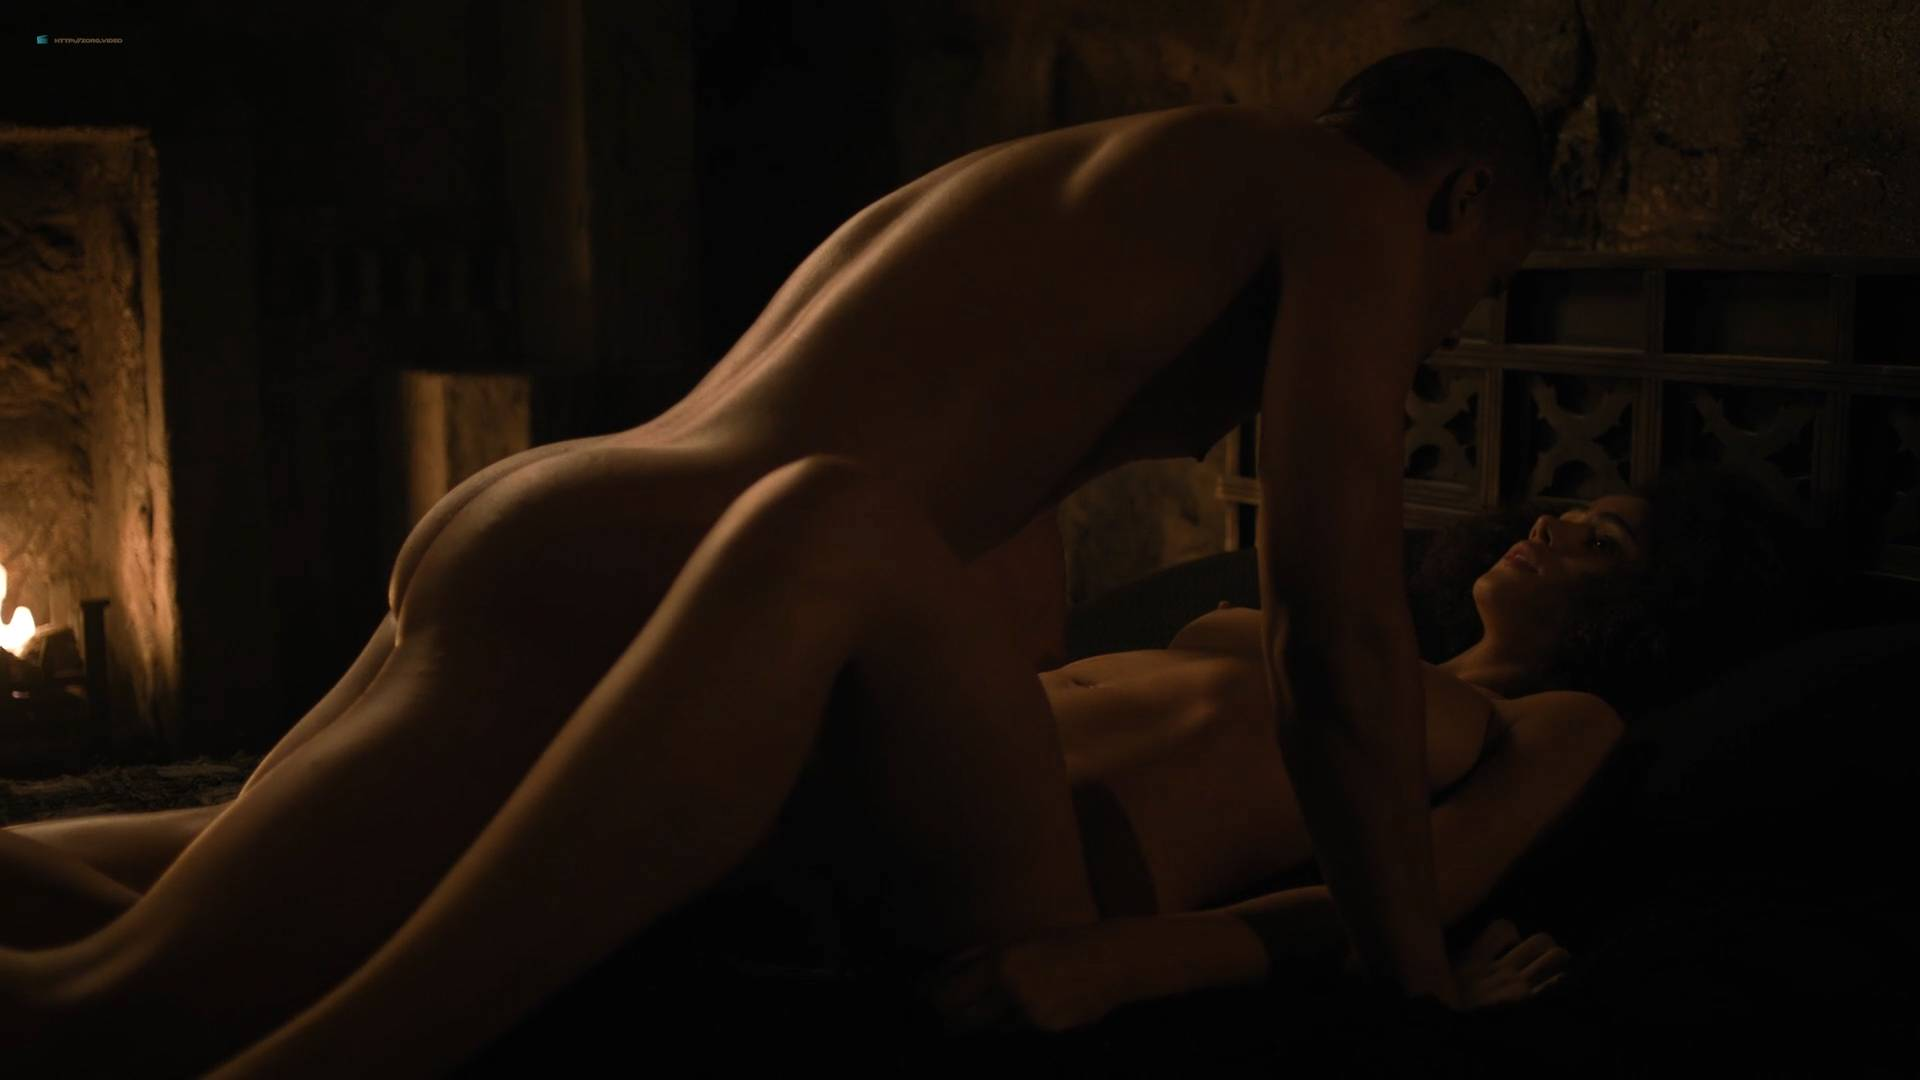 Nathalie-Emmanuel-nude-topless-and-butt-GoT-2017-s7e2-HD-1080p-Web-08.jpg